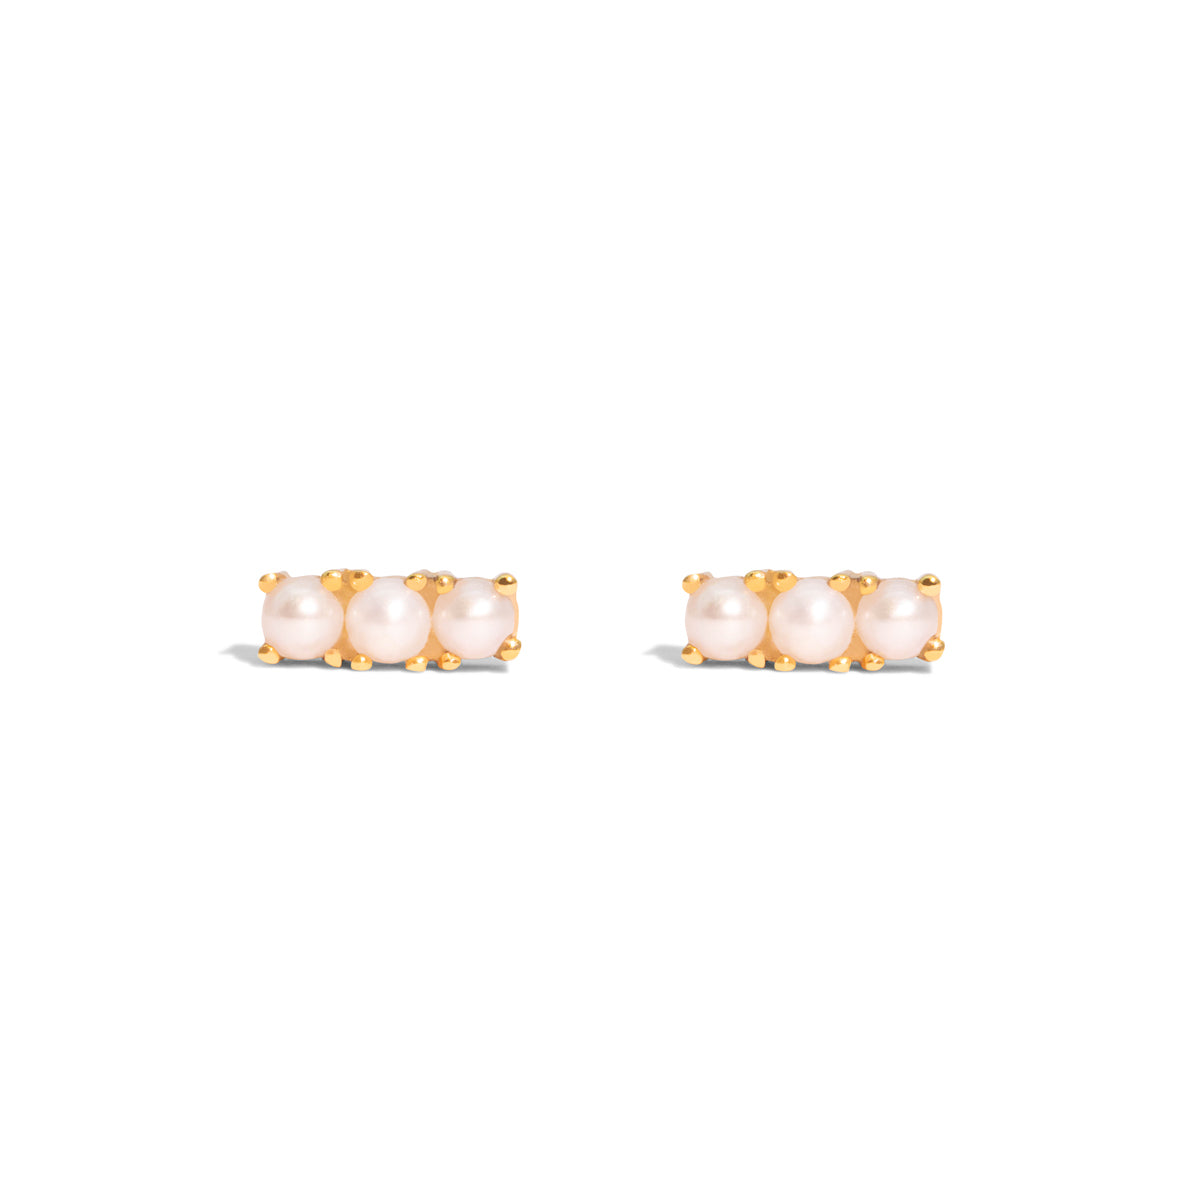 The Gold Pearl Cloud Trio Stud Earrings